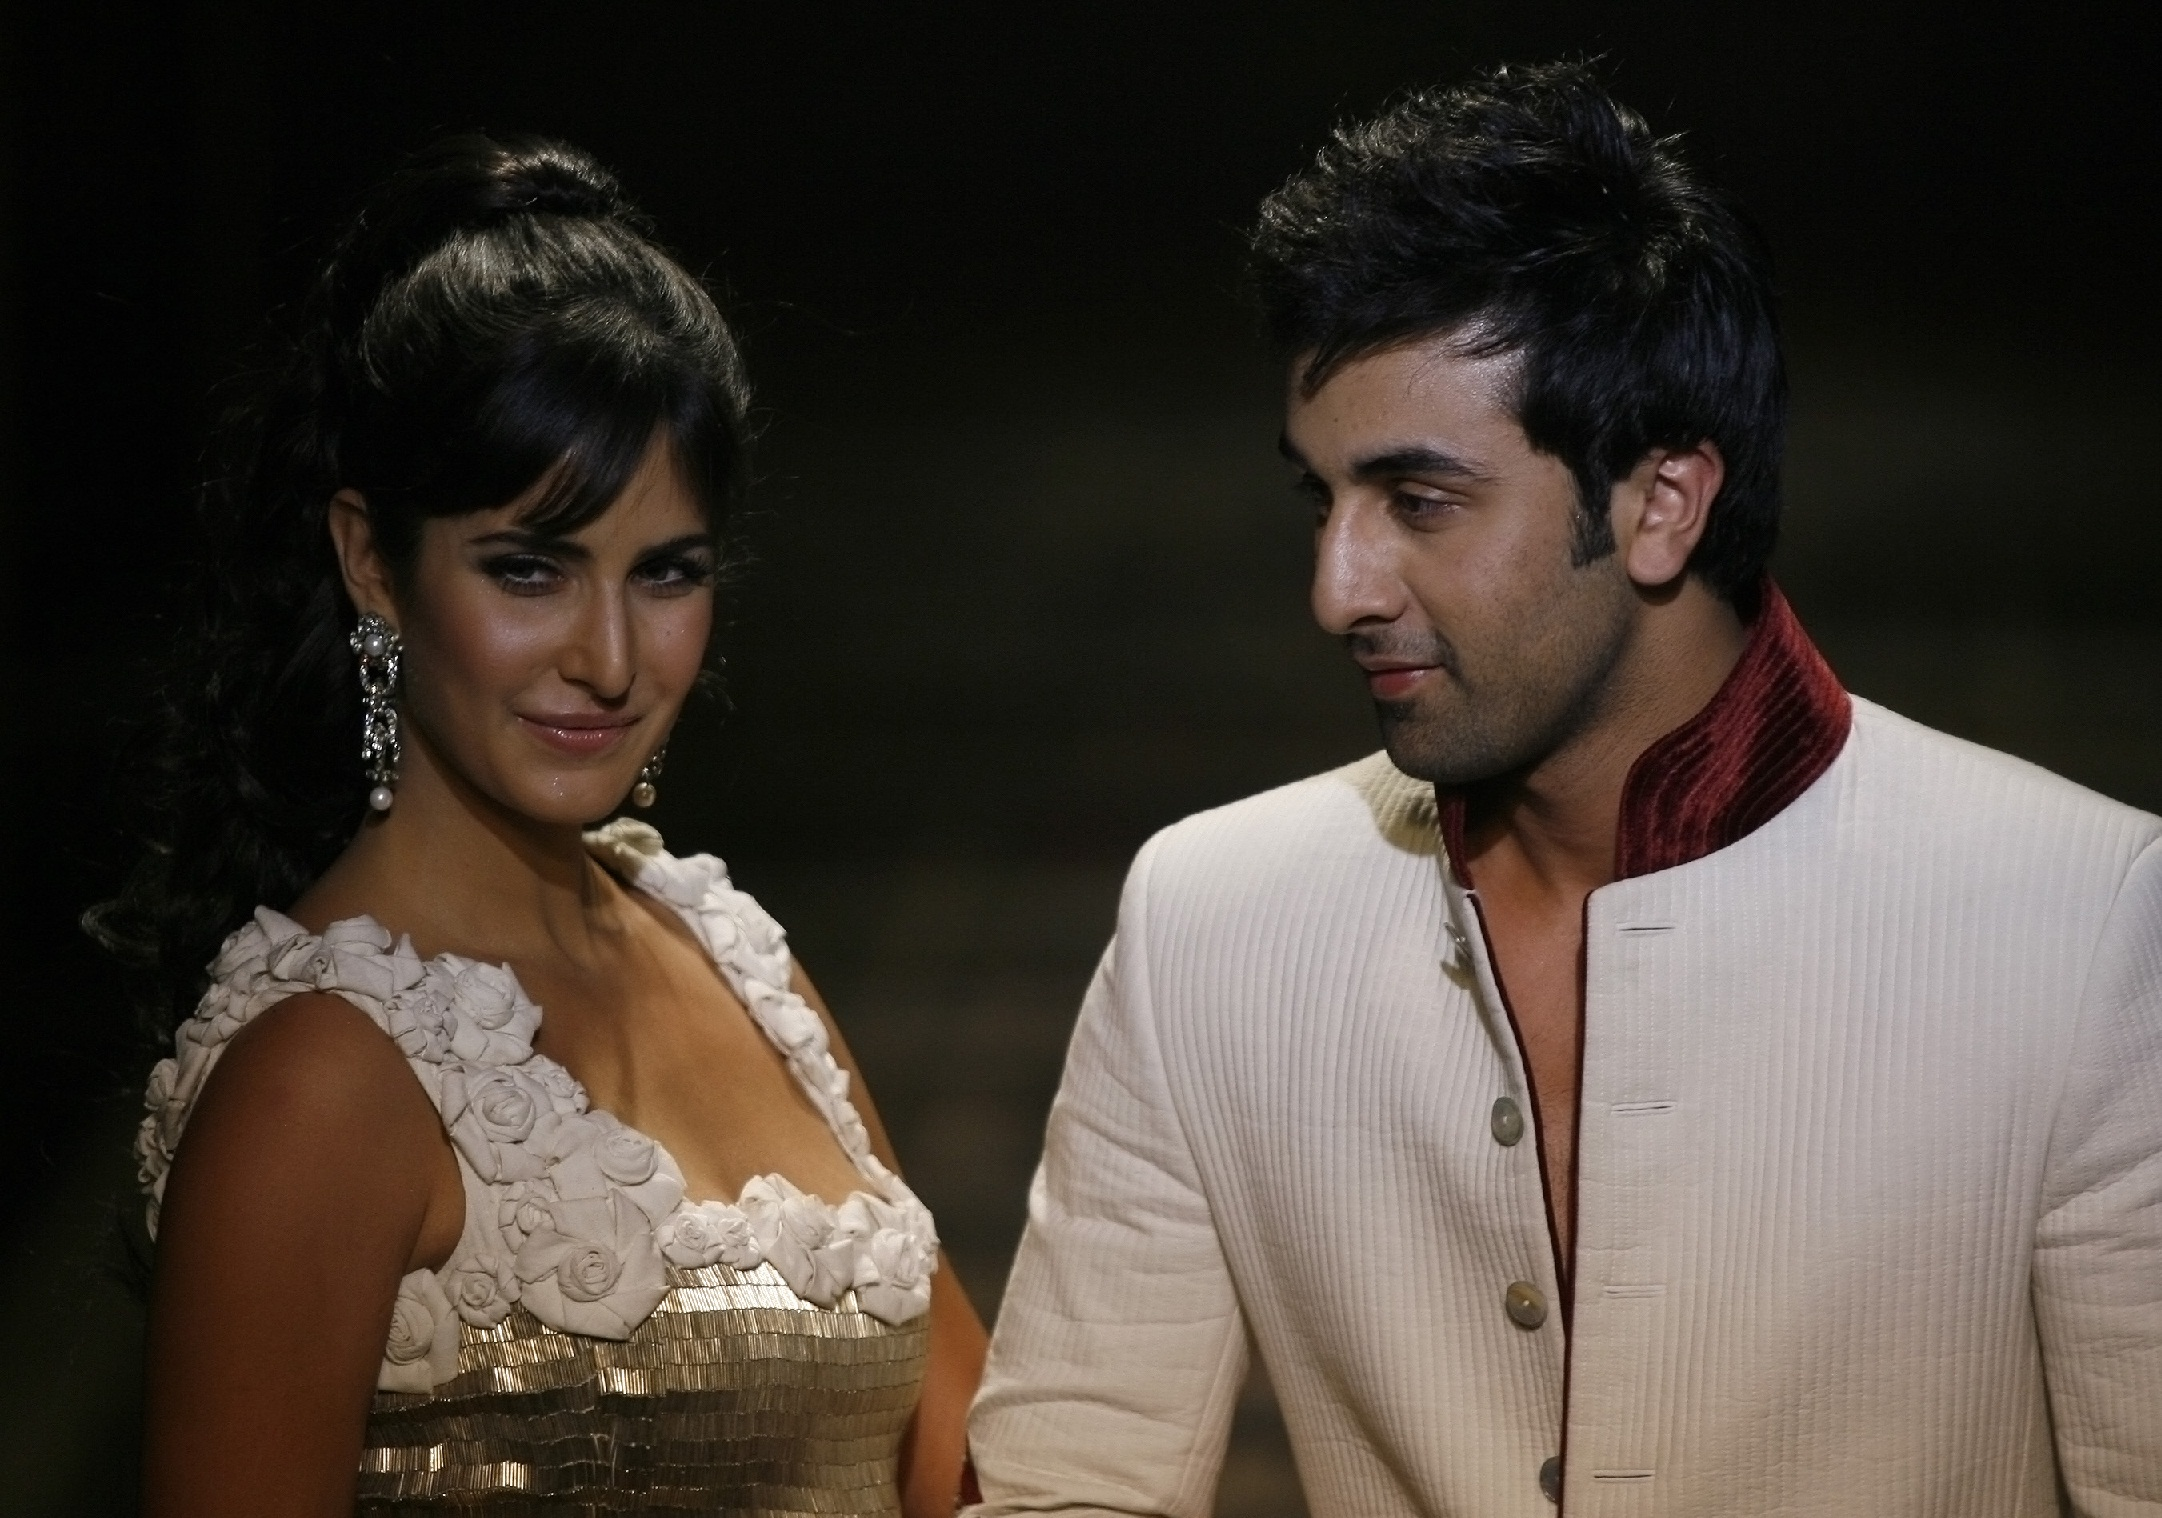 RANBIR KAPOOR POSTPONES THE RELEASE OF 'JAGGA JASOOS' 2